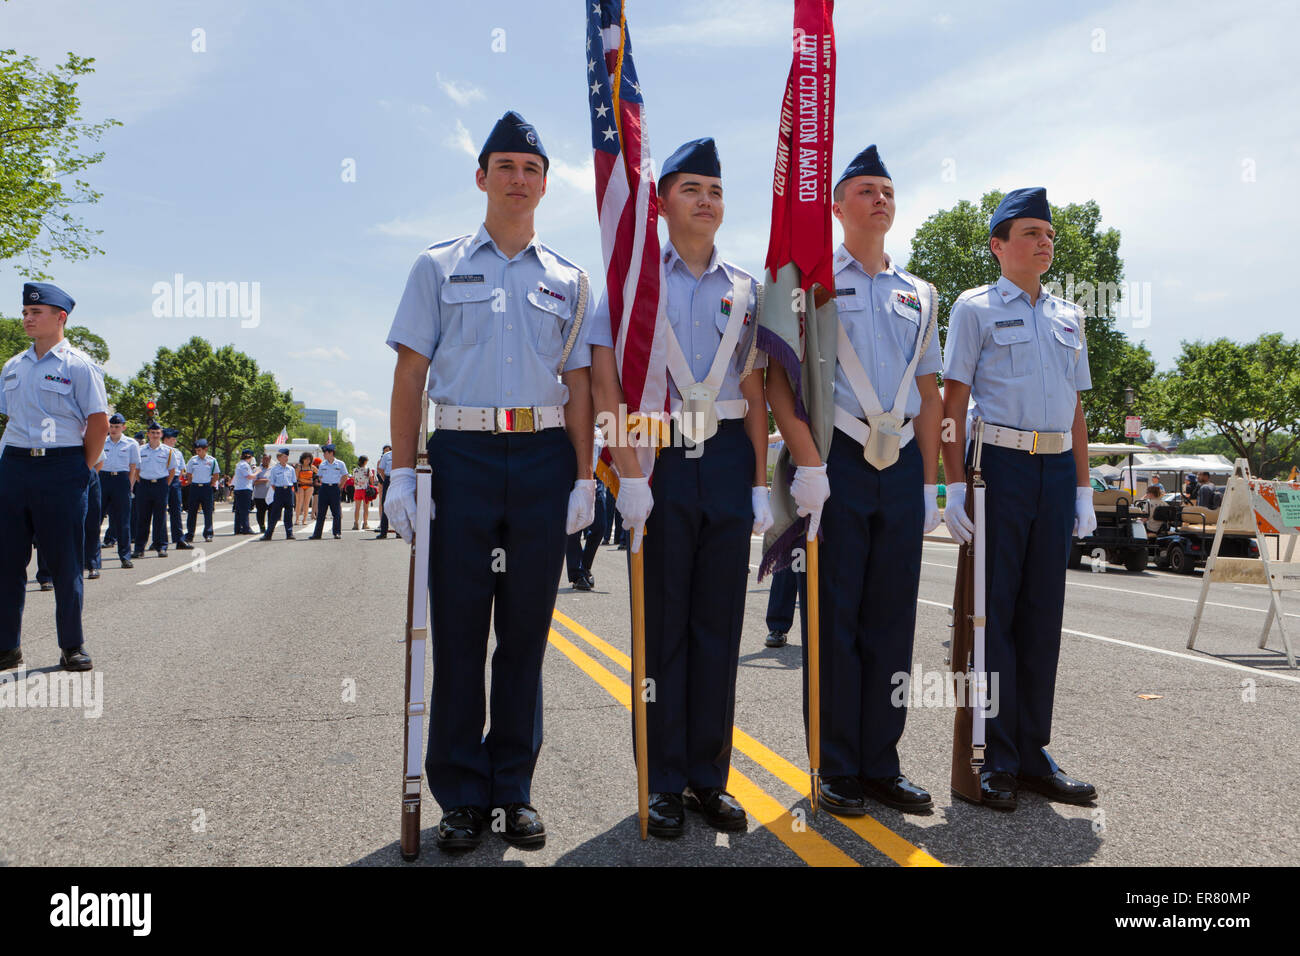 Civil Air Patrol - US Air Force Auxiliary color guards at an outdoor event - USA - Stock Image